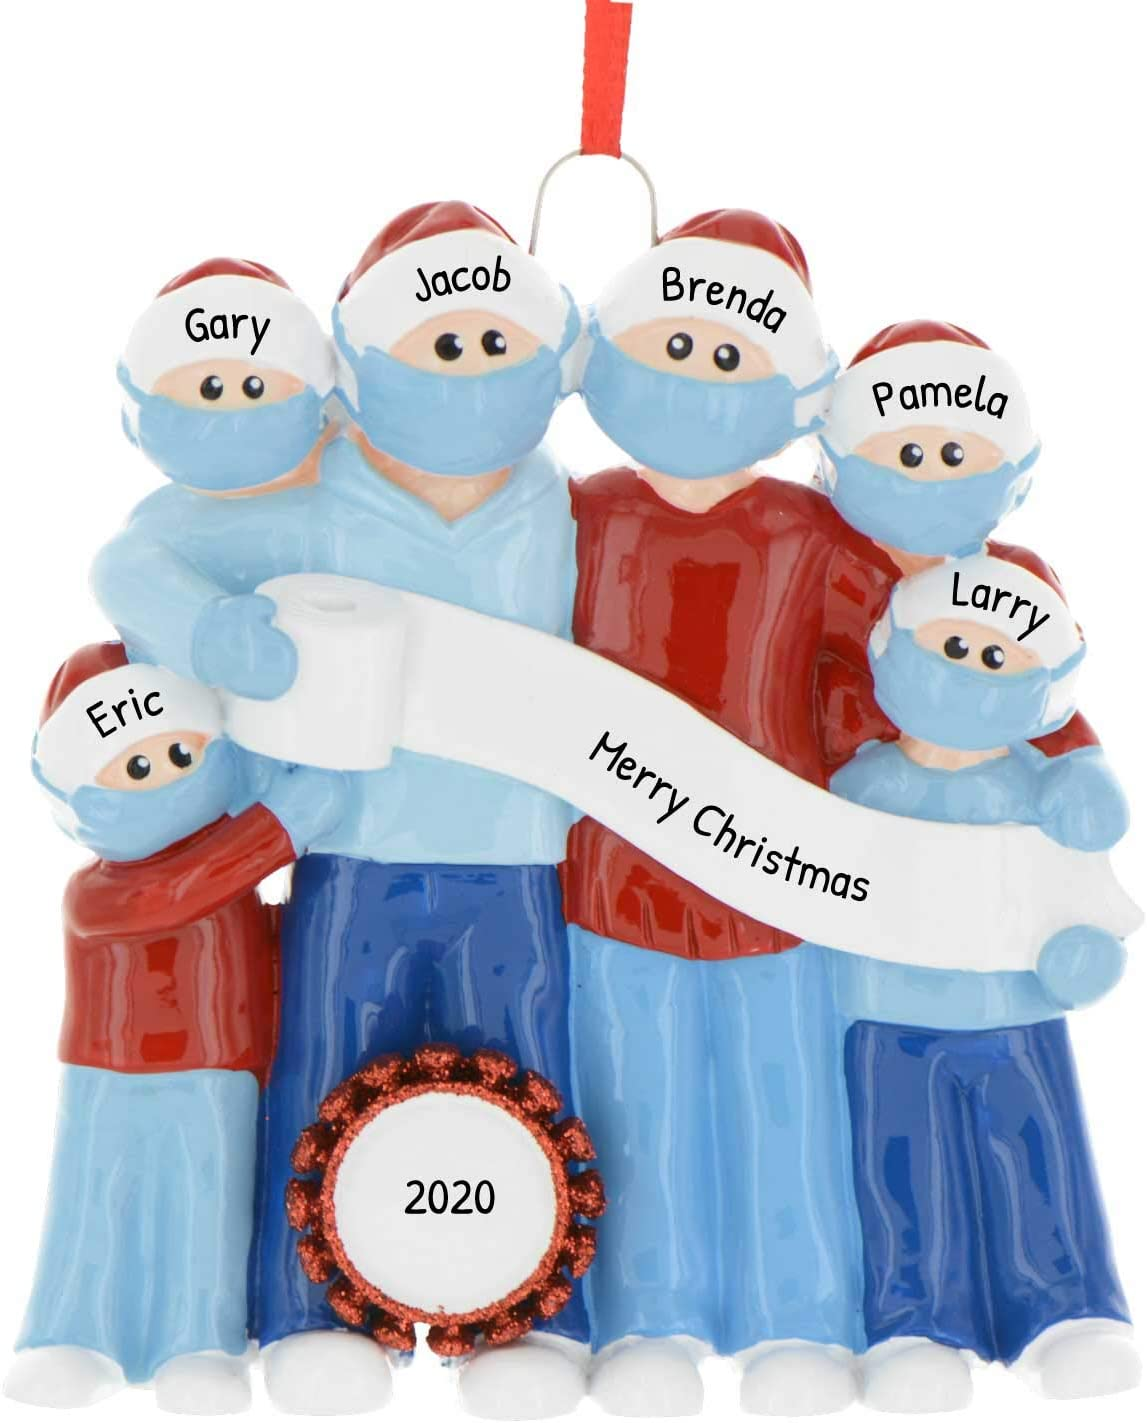 2020 Home Christmas Gifts Amazon.com: Personalized Survival Family of 6 Christmas Tree